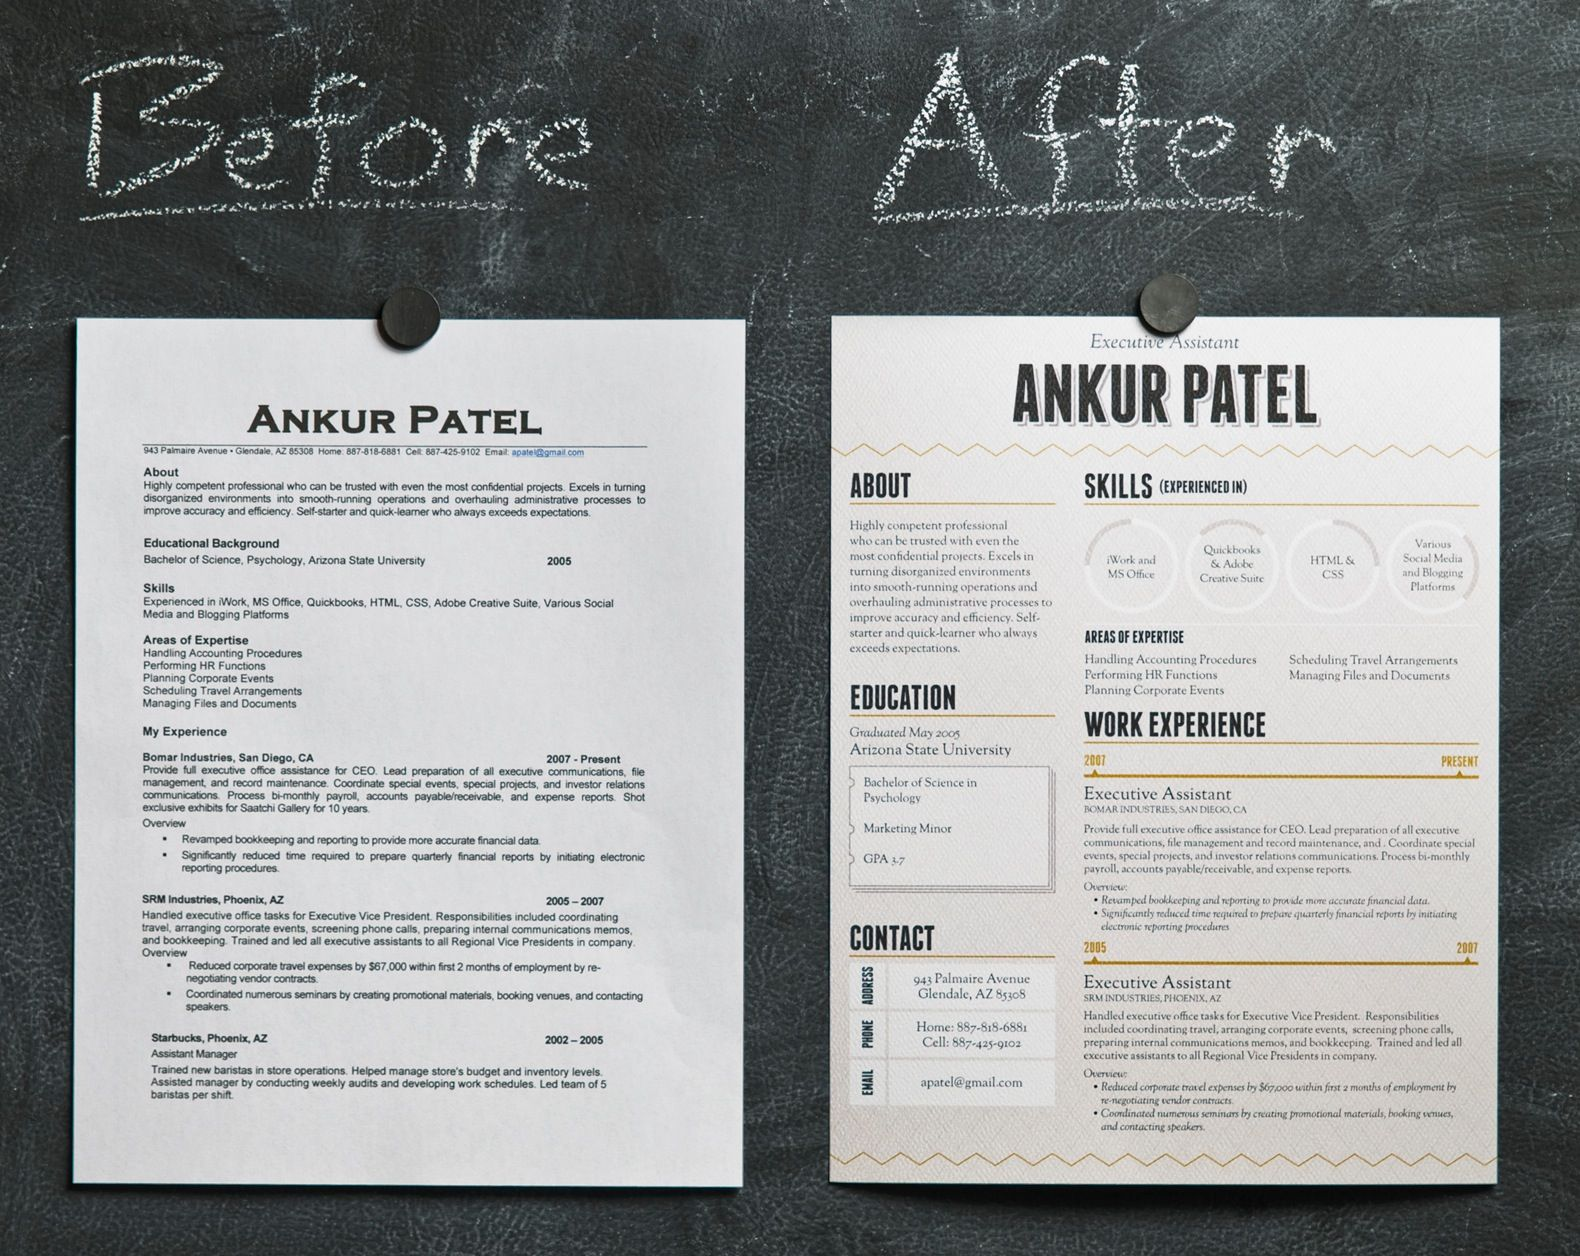 Can Beautiful Design Make Your Resume Stand Out?